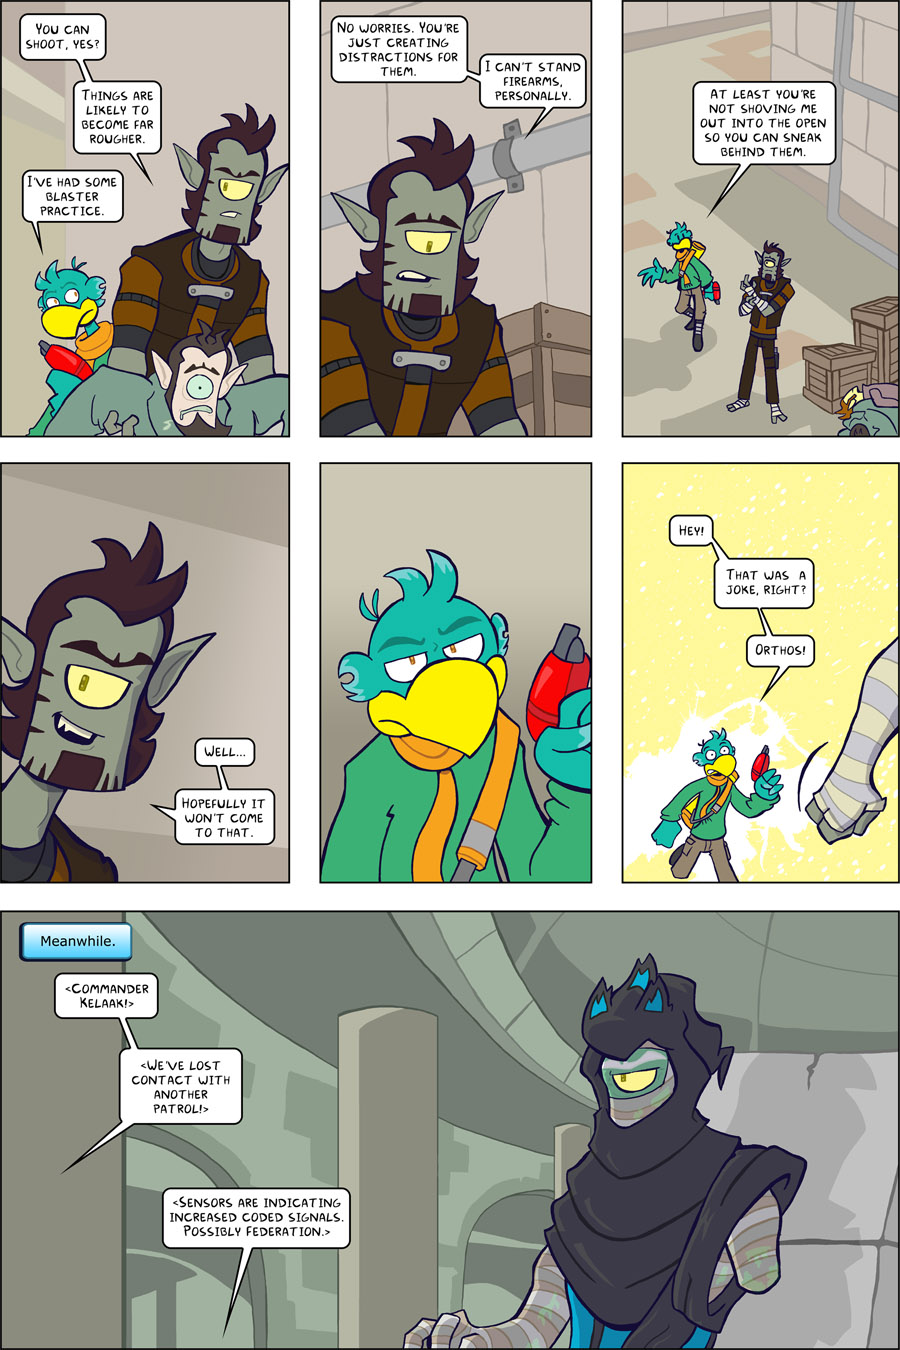 Episode 2: Pg 19